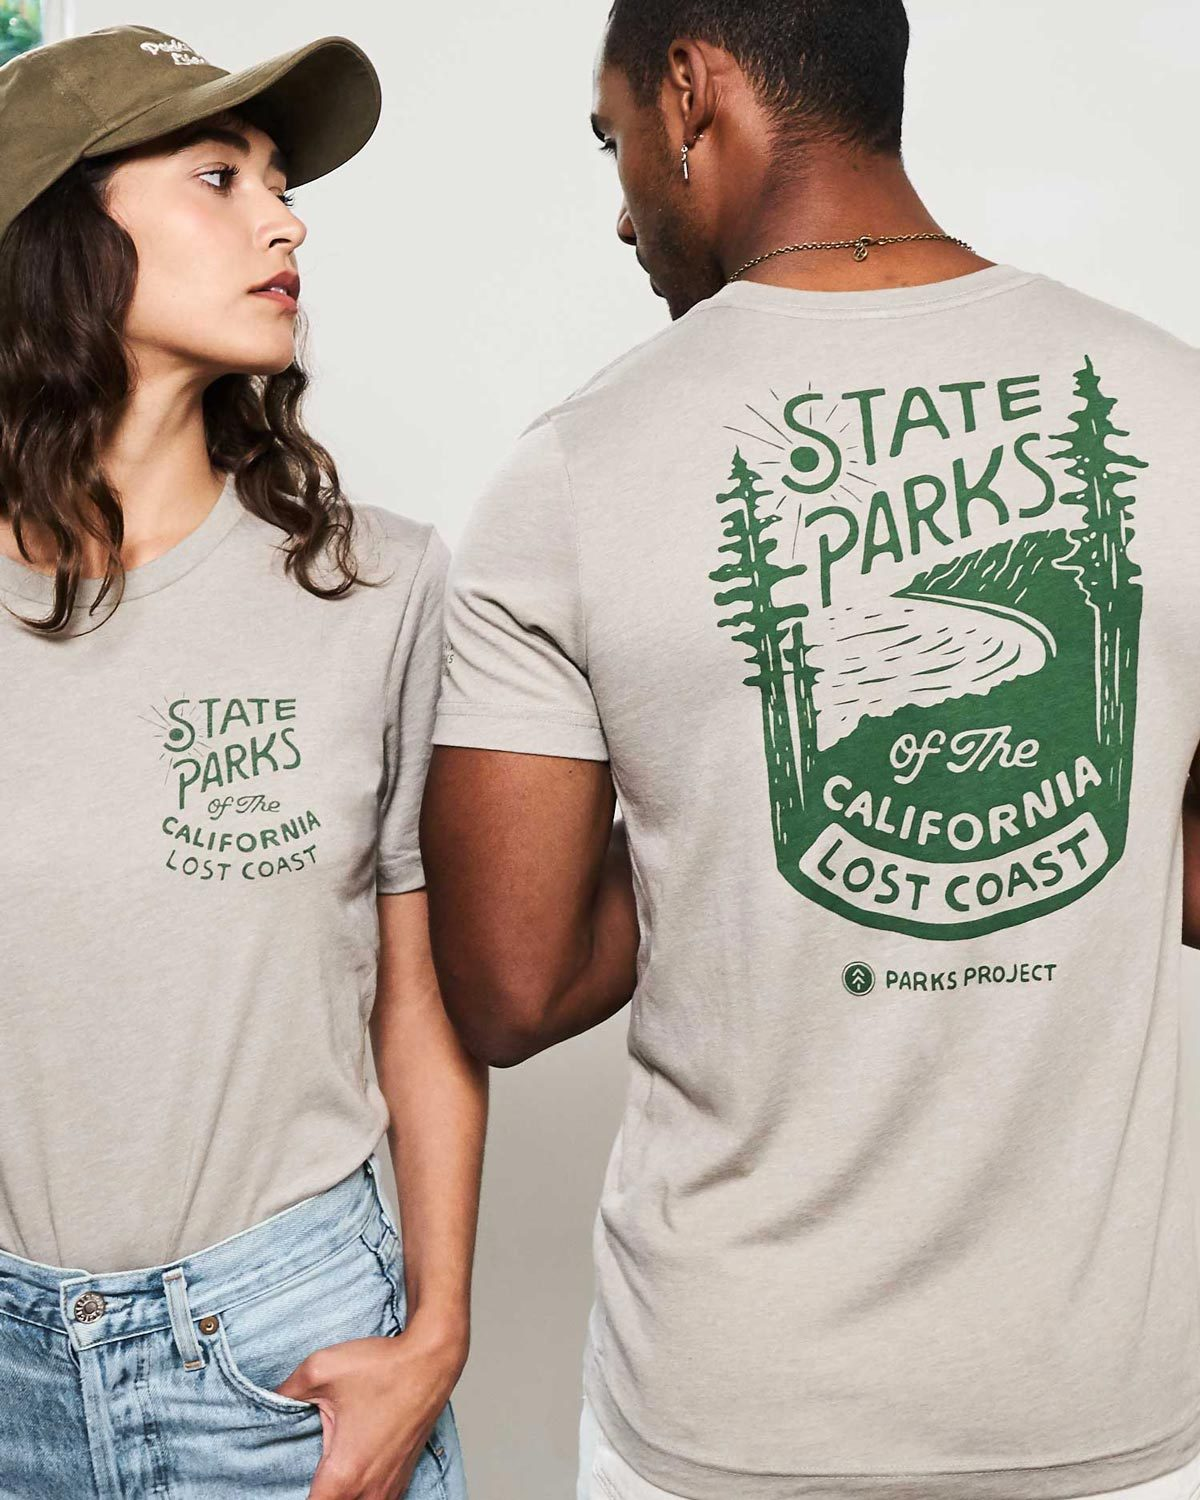 State Parks of the California Lost Coast Tee